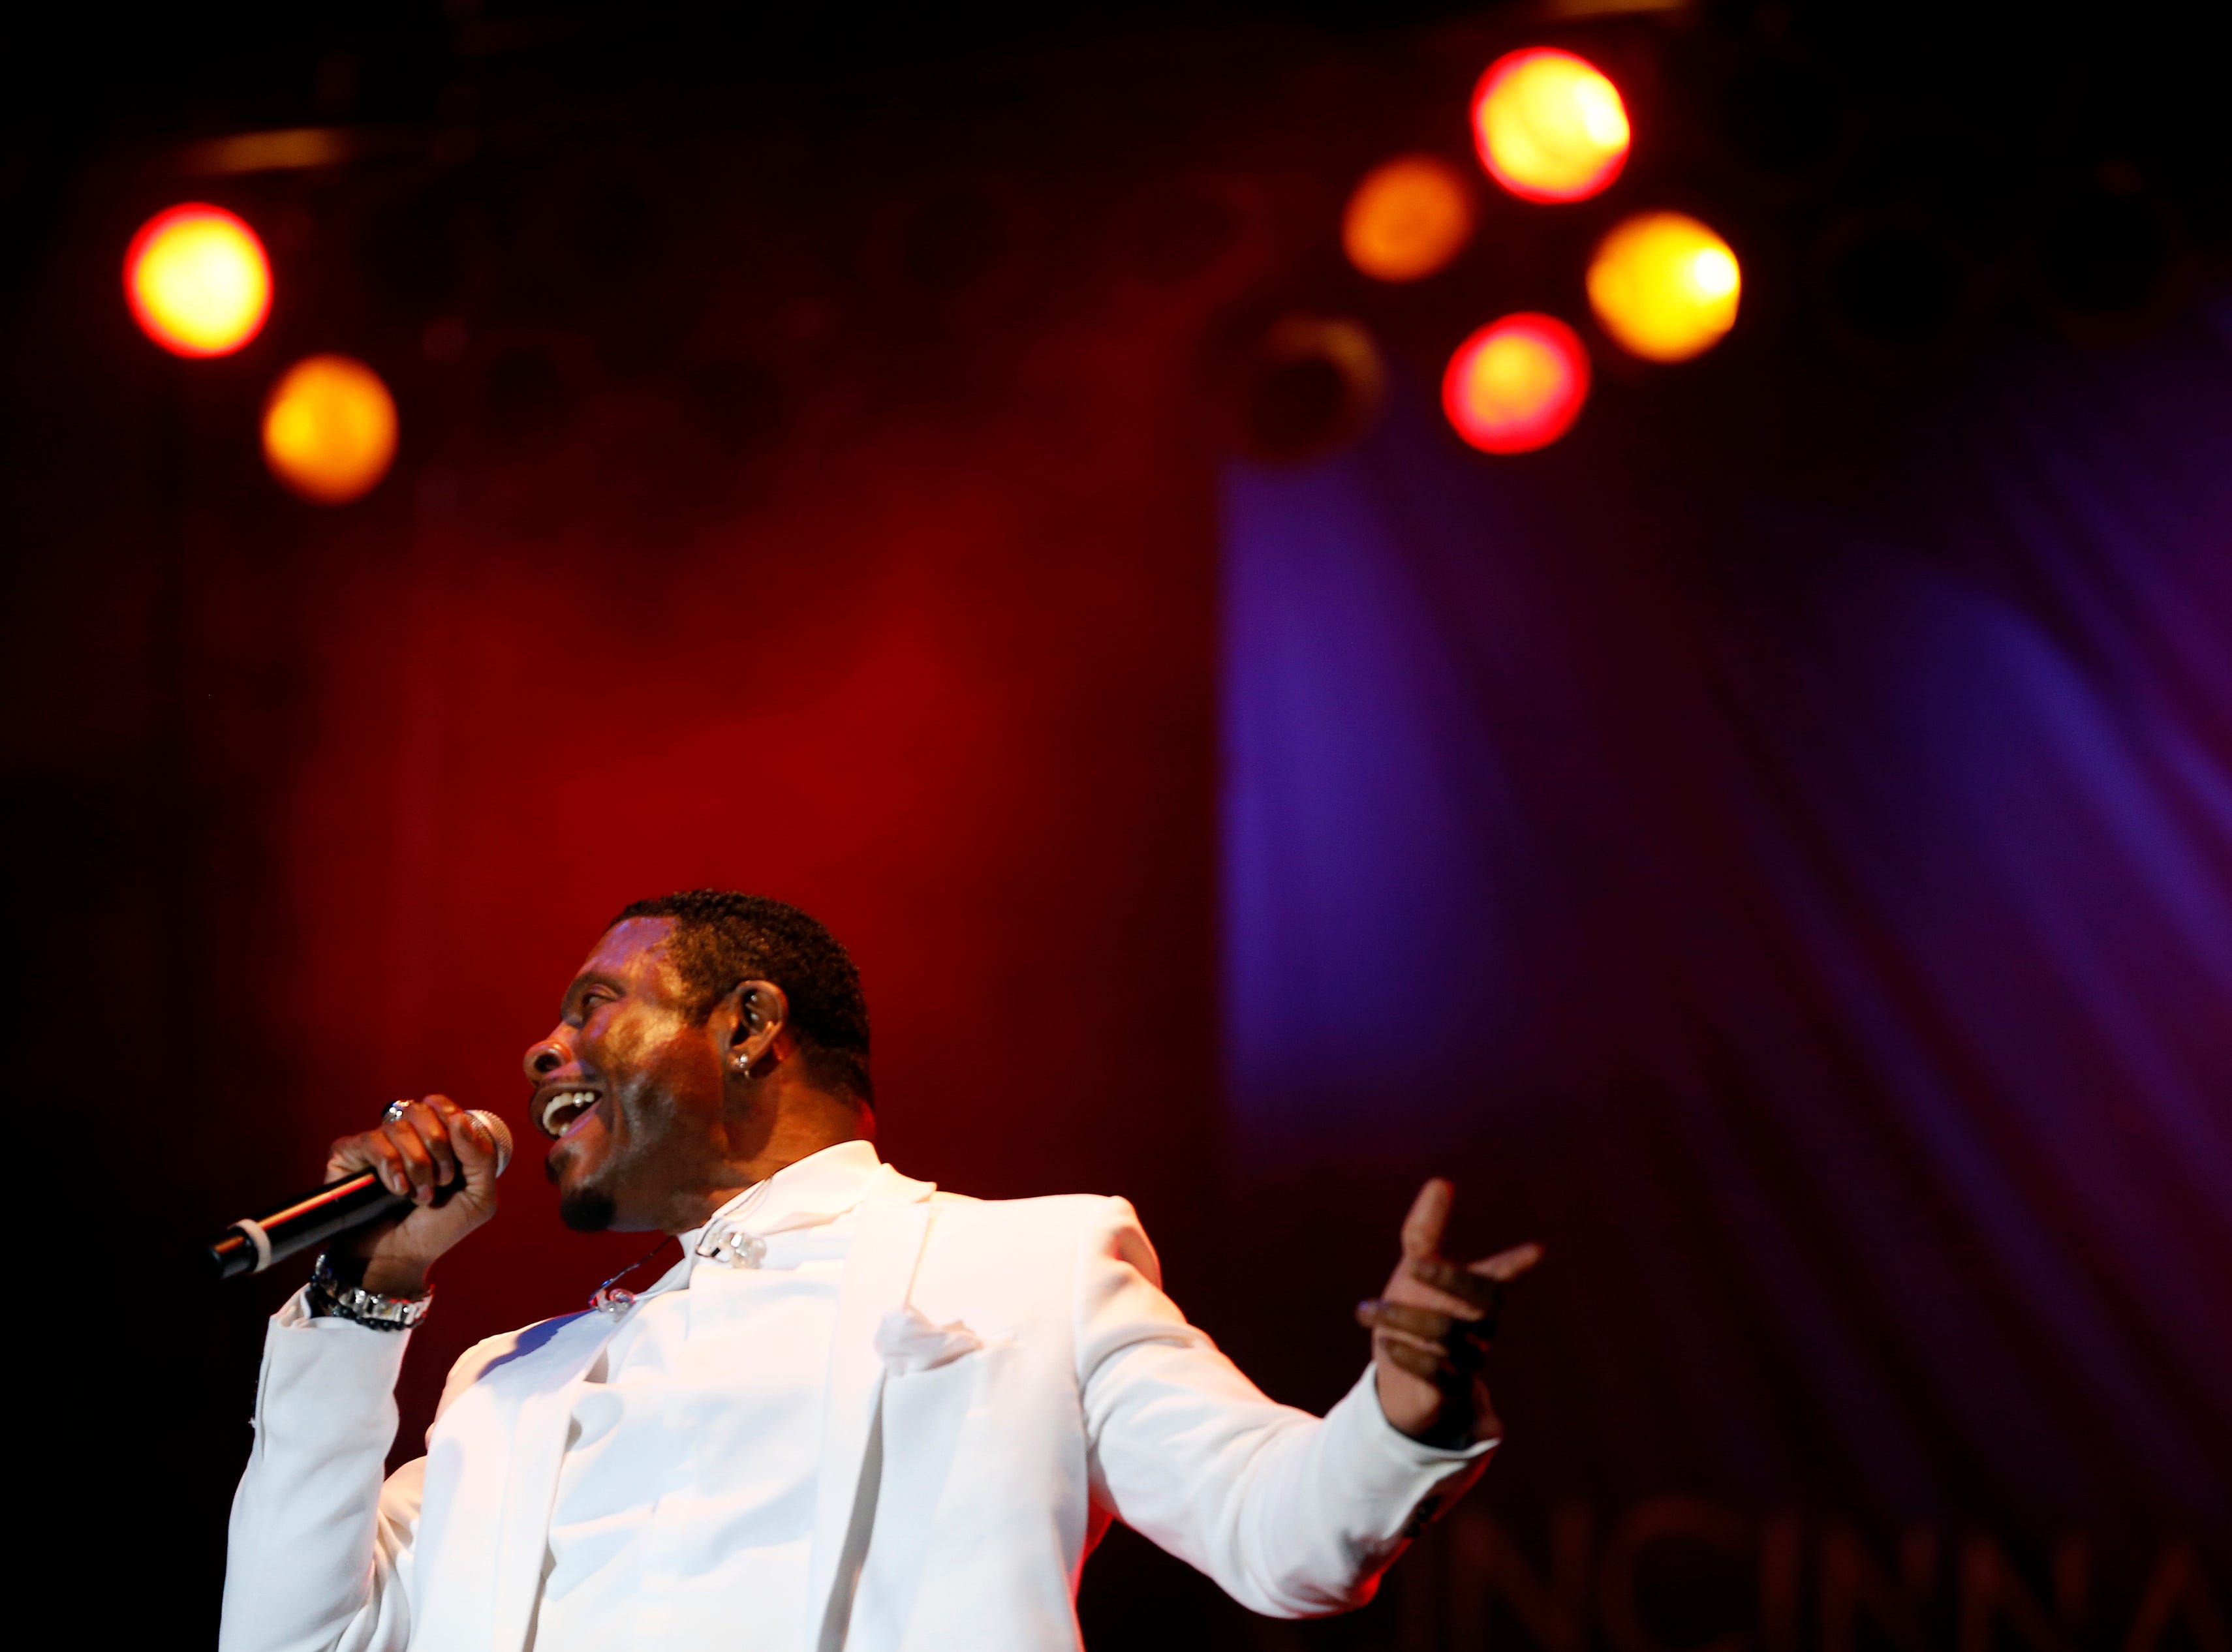 Keith Sweat performs during the Cincinnati Music Festival.